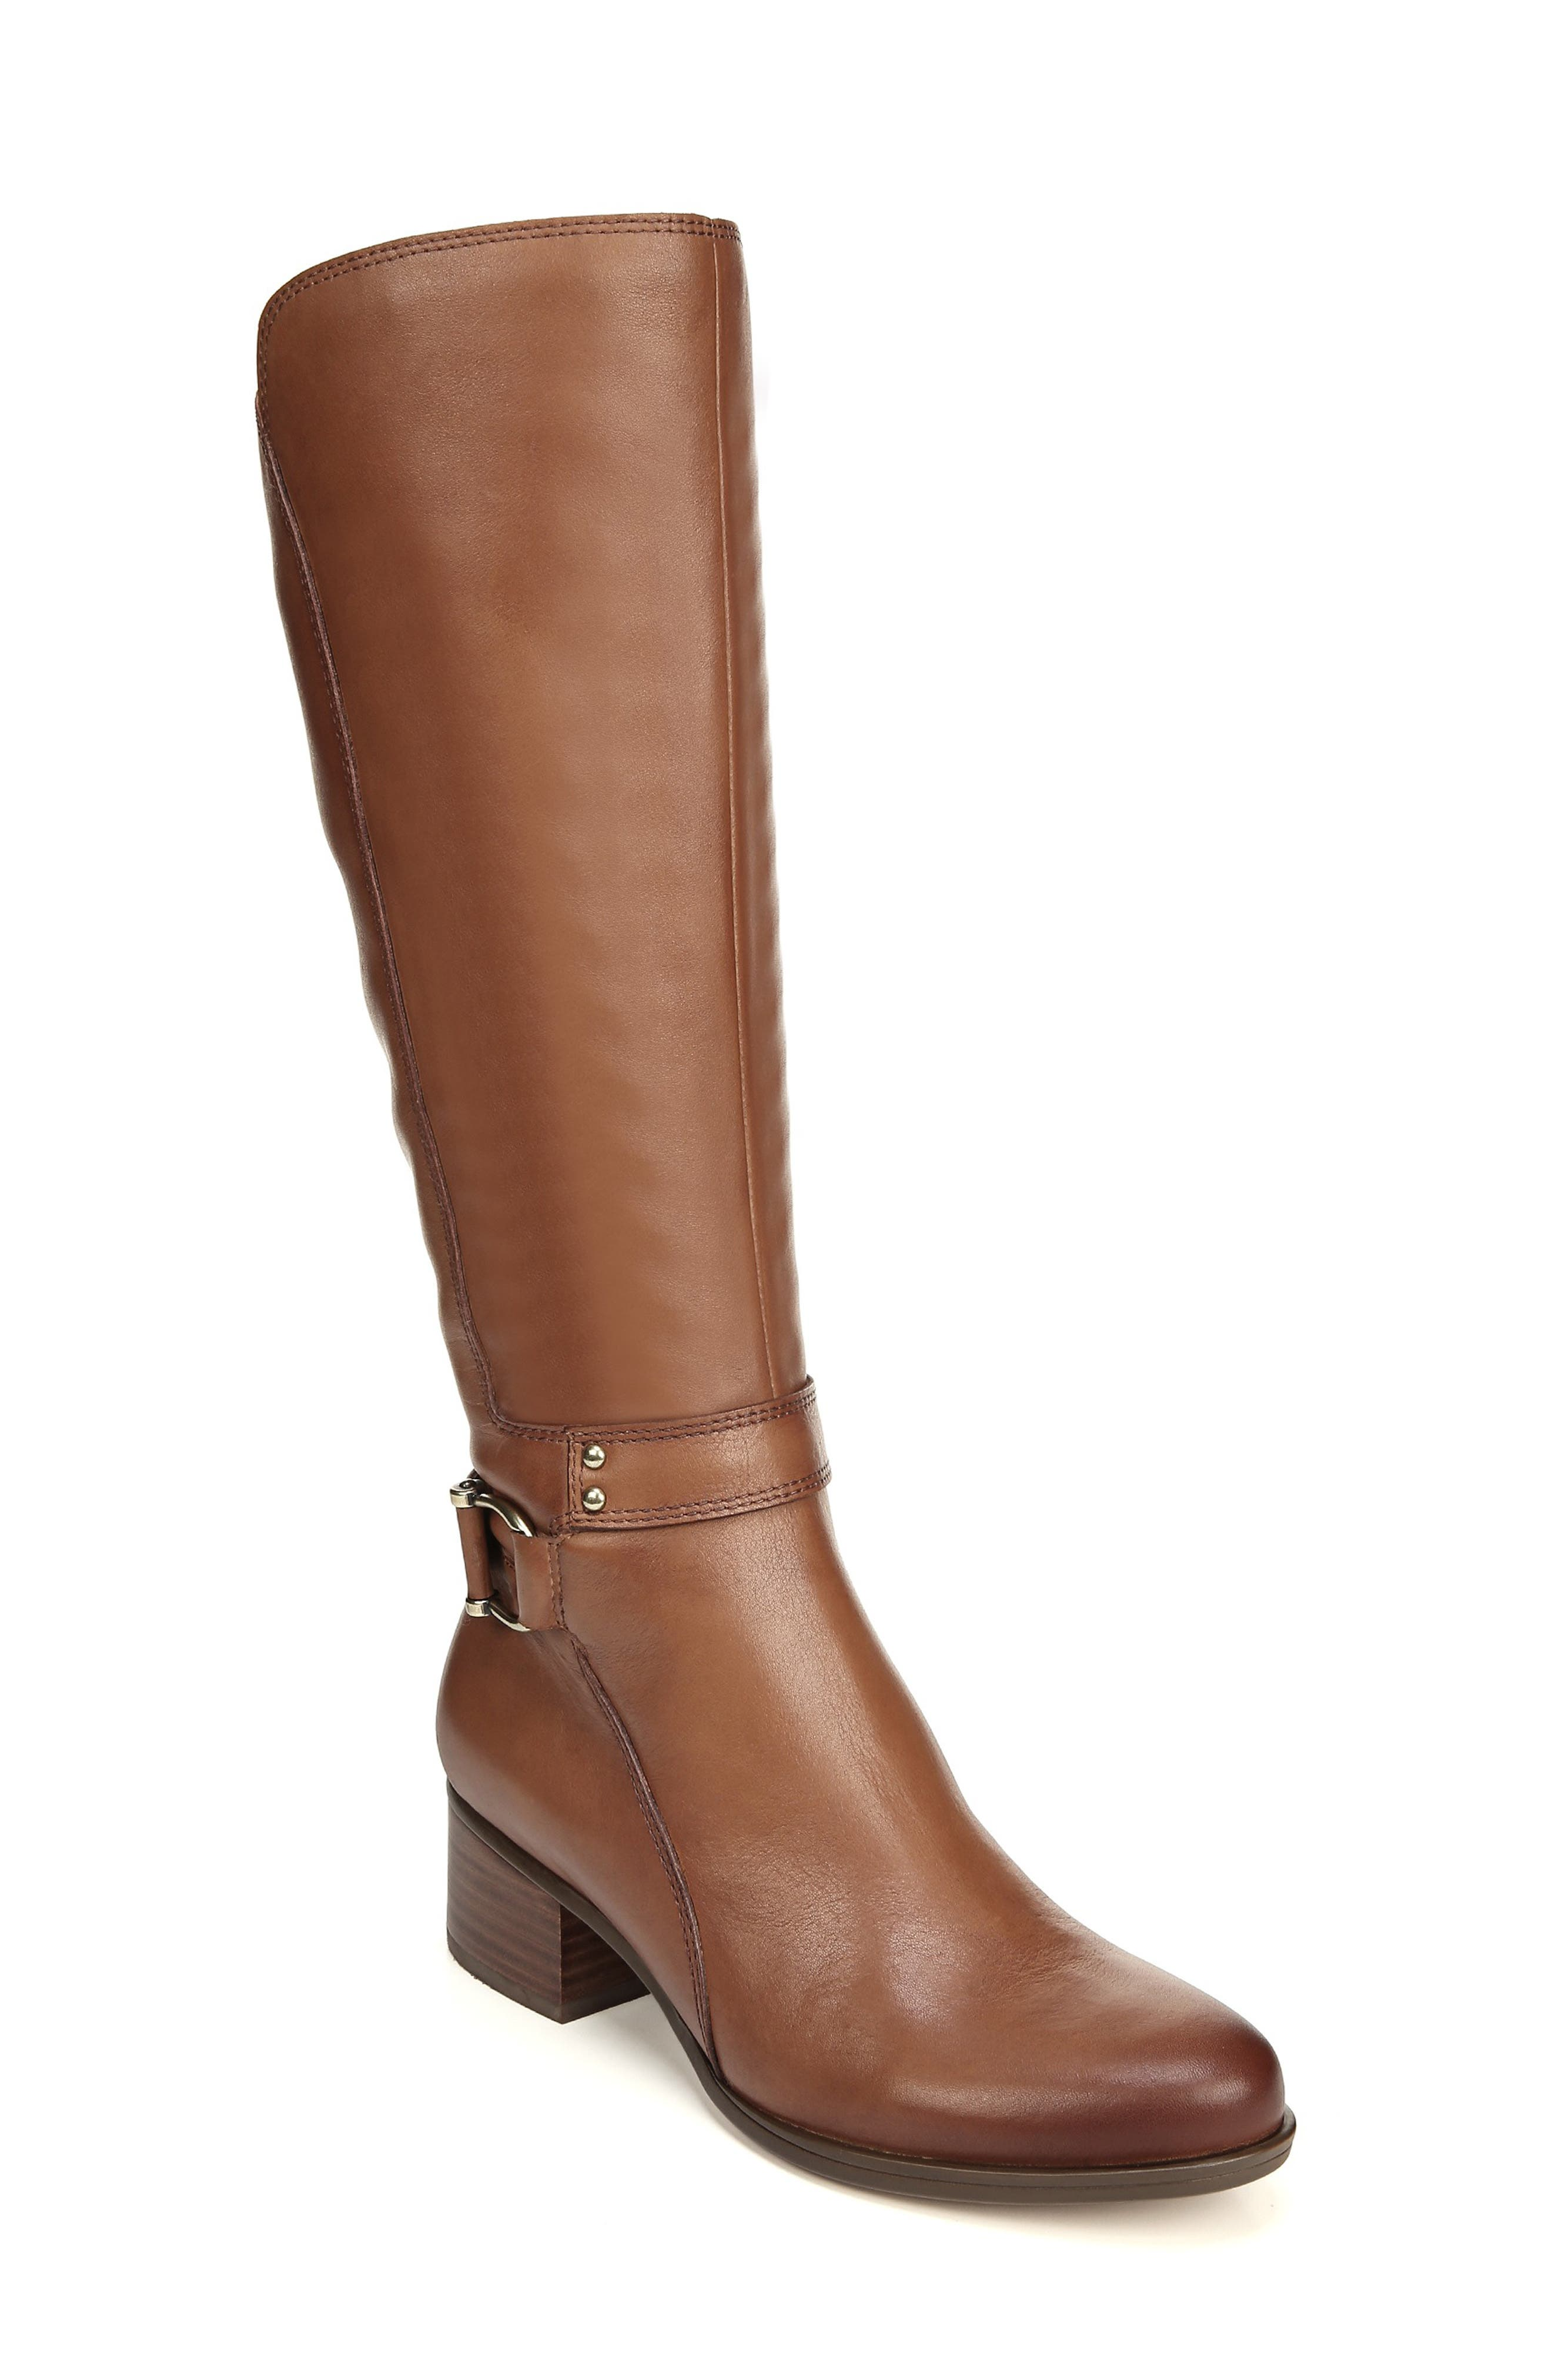 NATURALIZER, Dane Knee High Riding Boot, Main thumbnail 1, color, MAPLE LEATHER